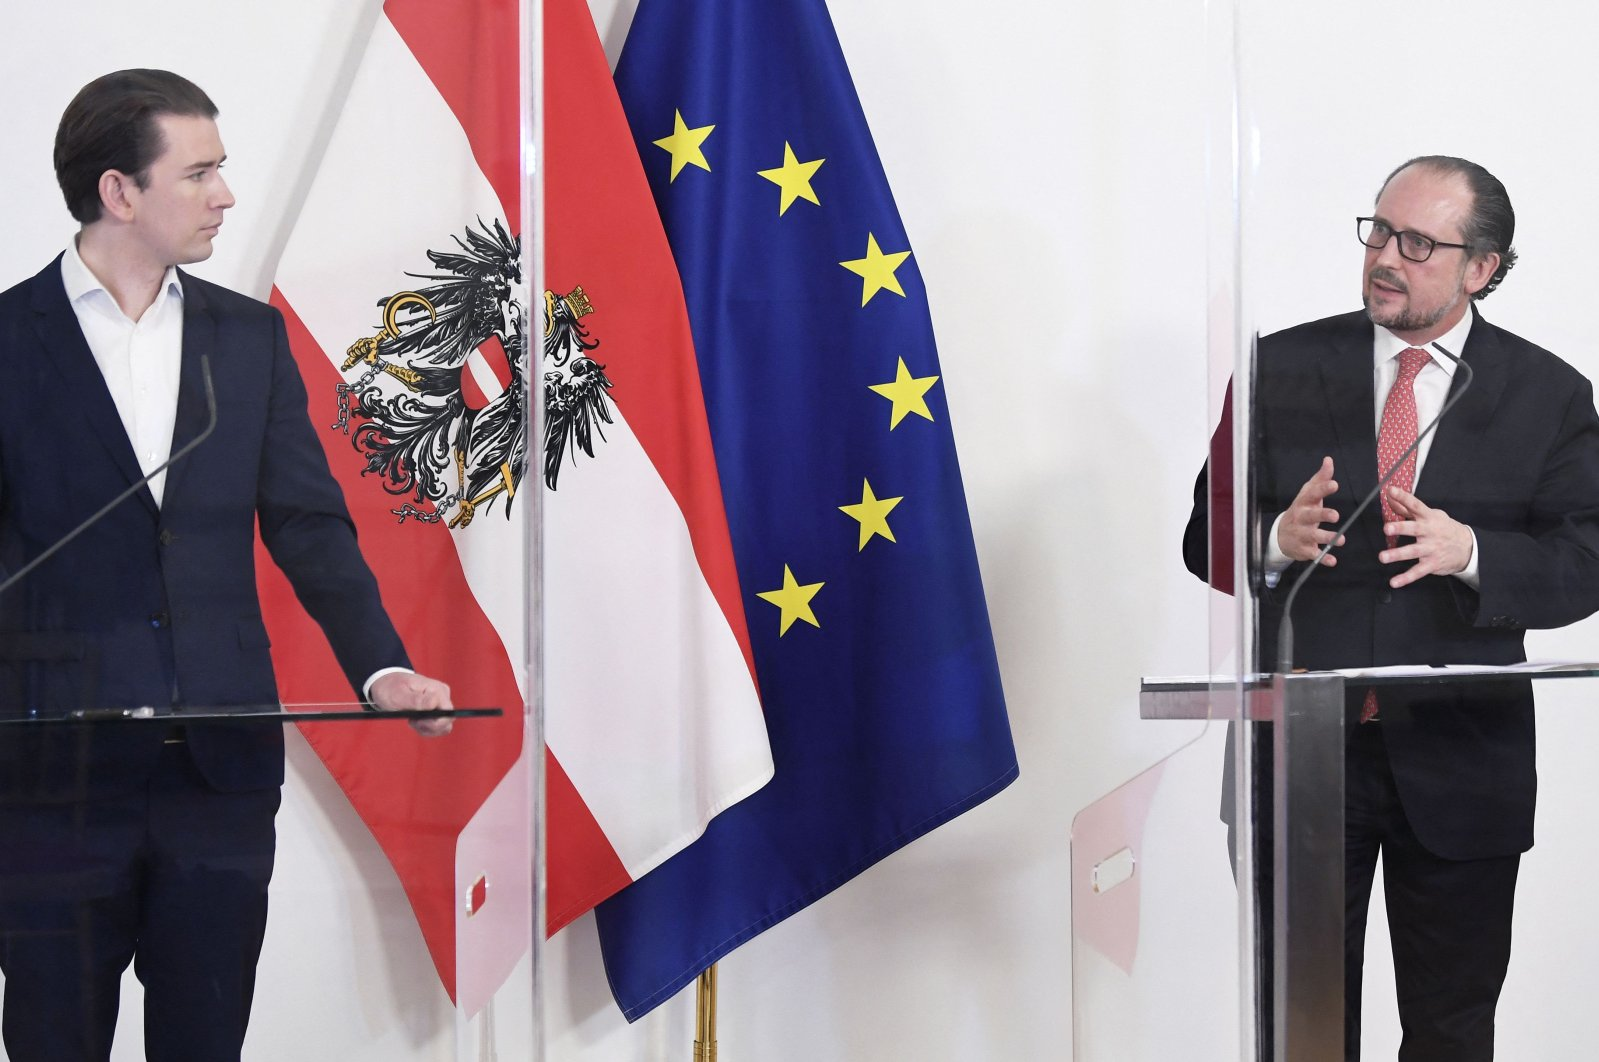 Then Austrian Chancellor Sebastian Kurz (L) and Austrian Foreign Minister Alexander Schallenberg at a press conference following a ministerial council meeting at the Chancellery in Vienna, Austria, April 28, 2021. (AFP Photo)